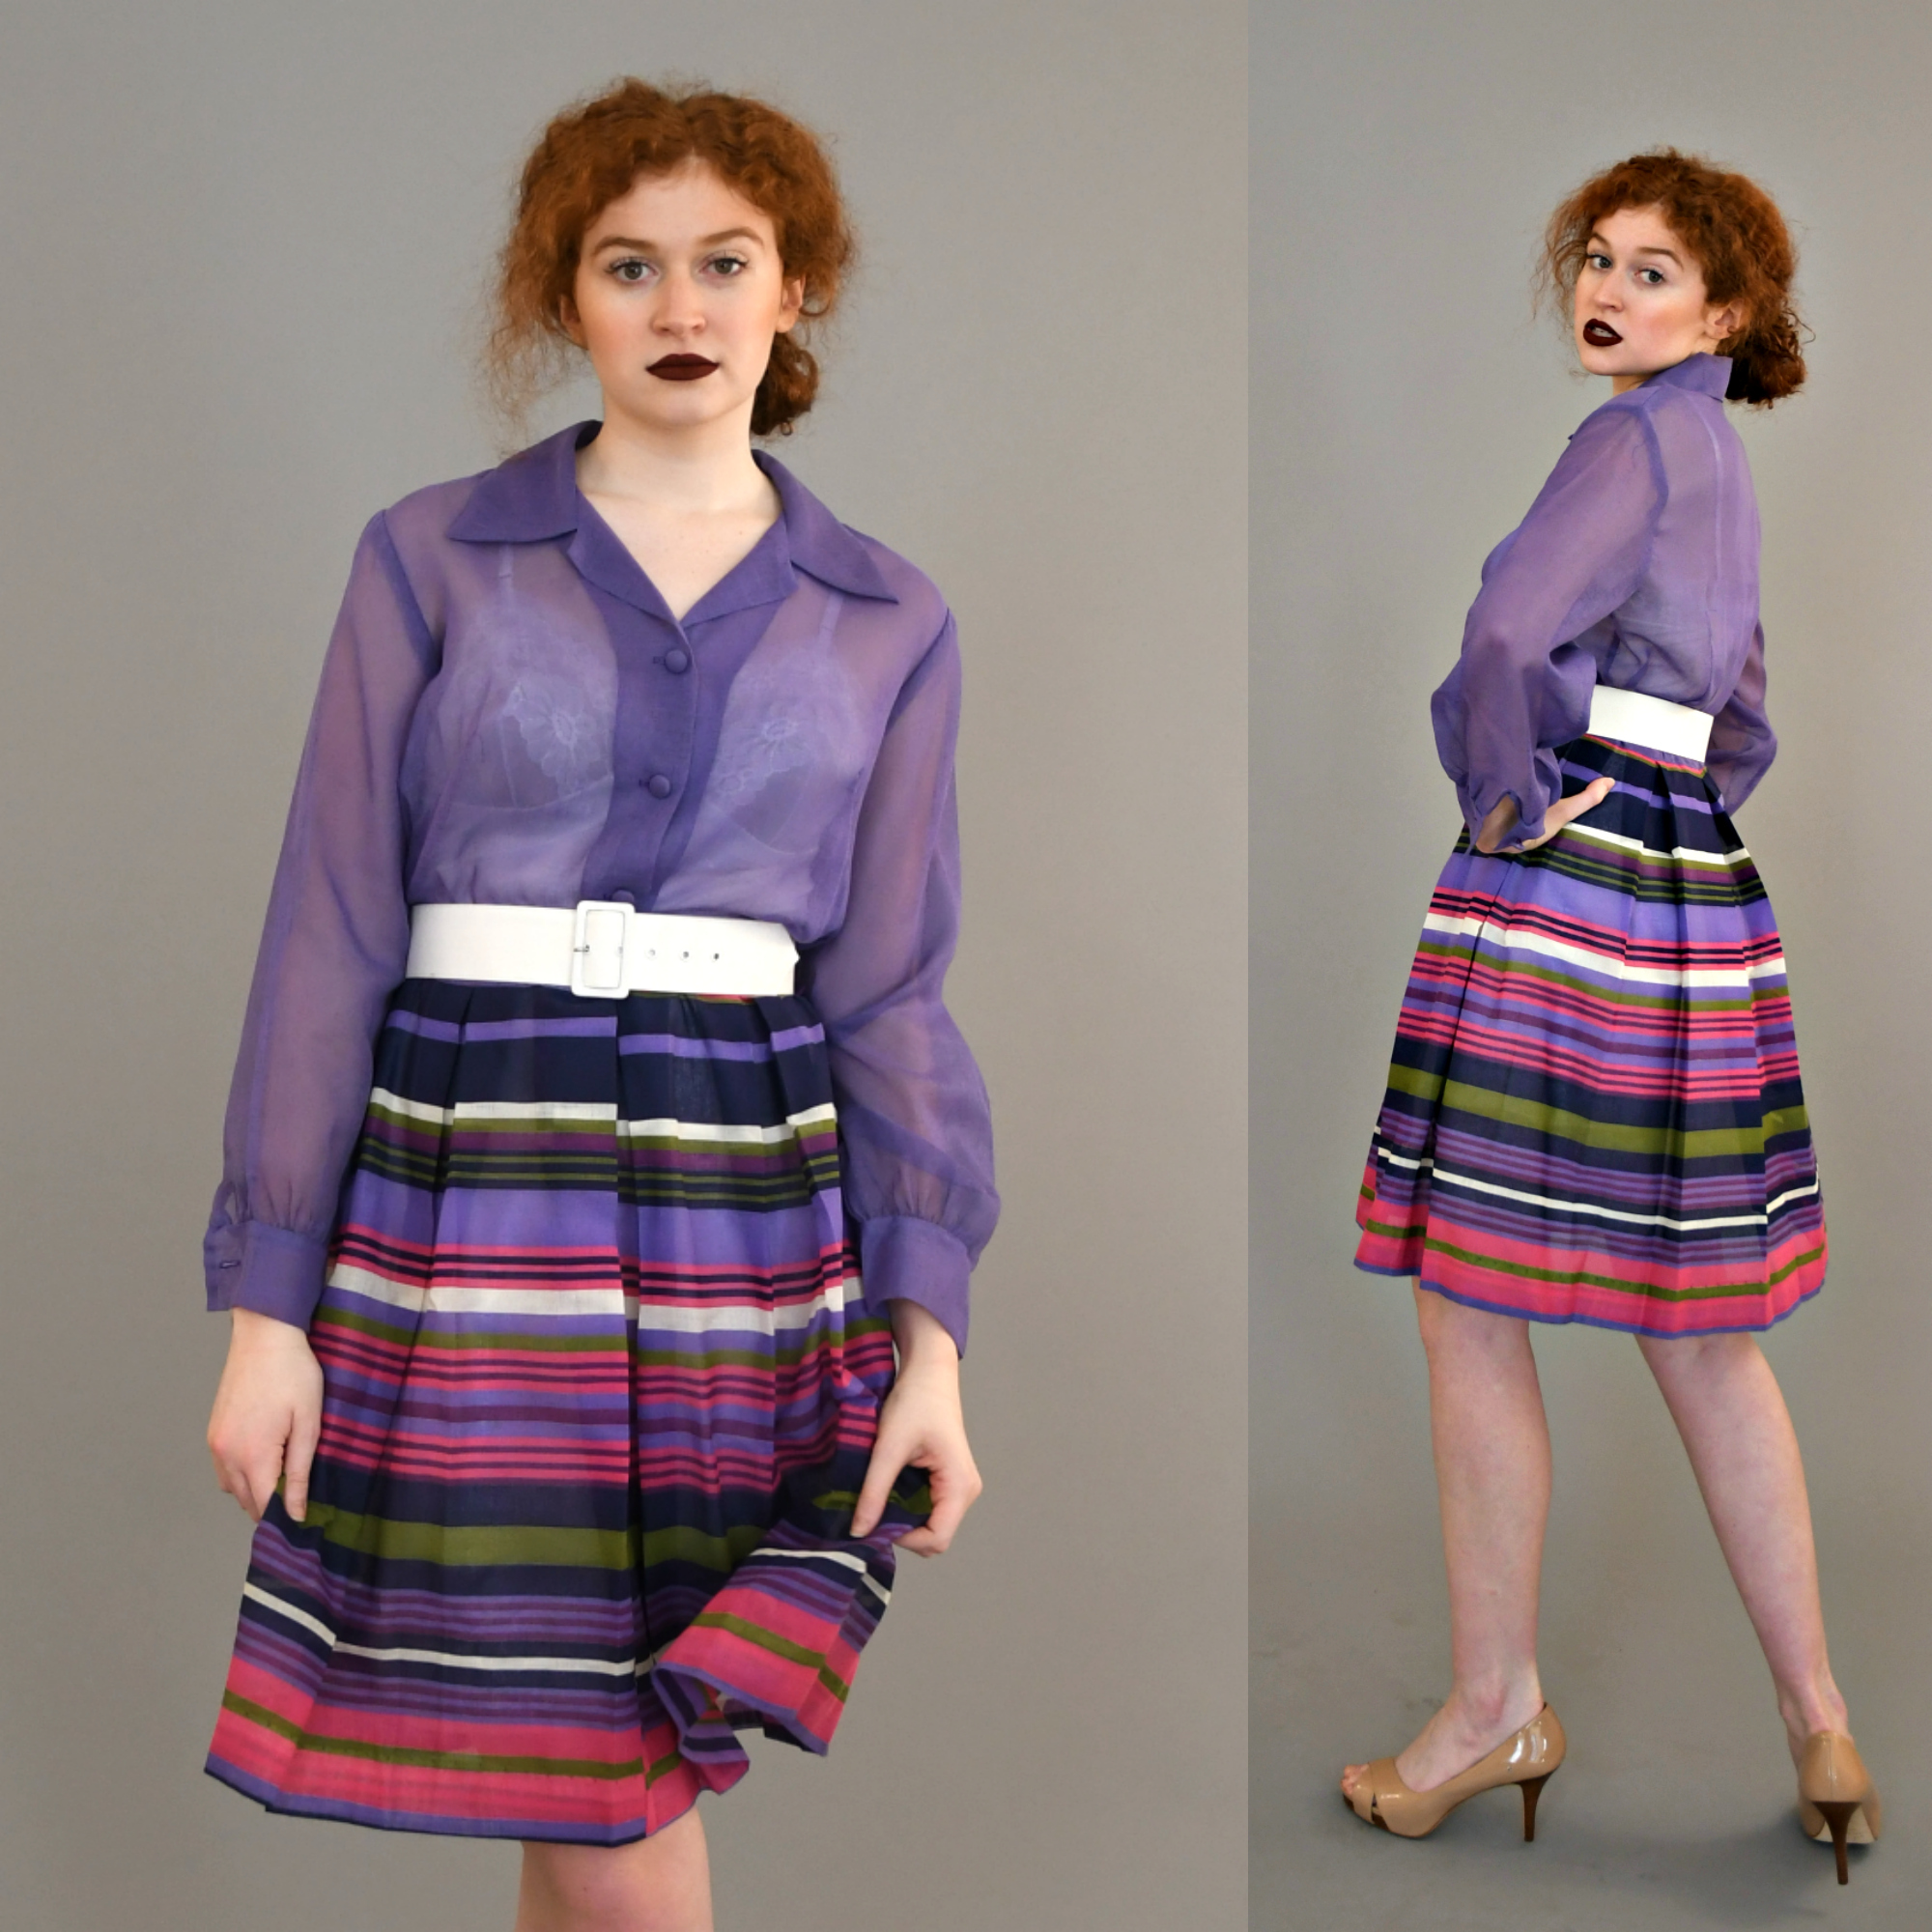 purpledress.jpg